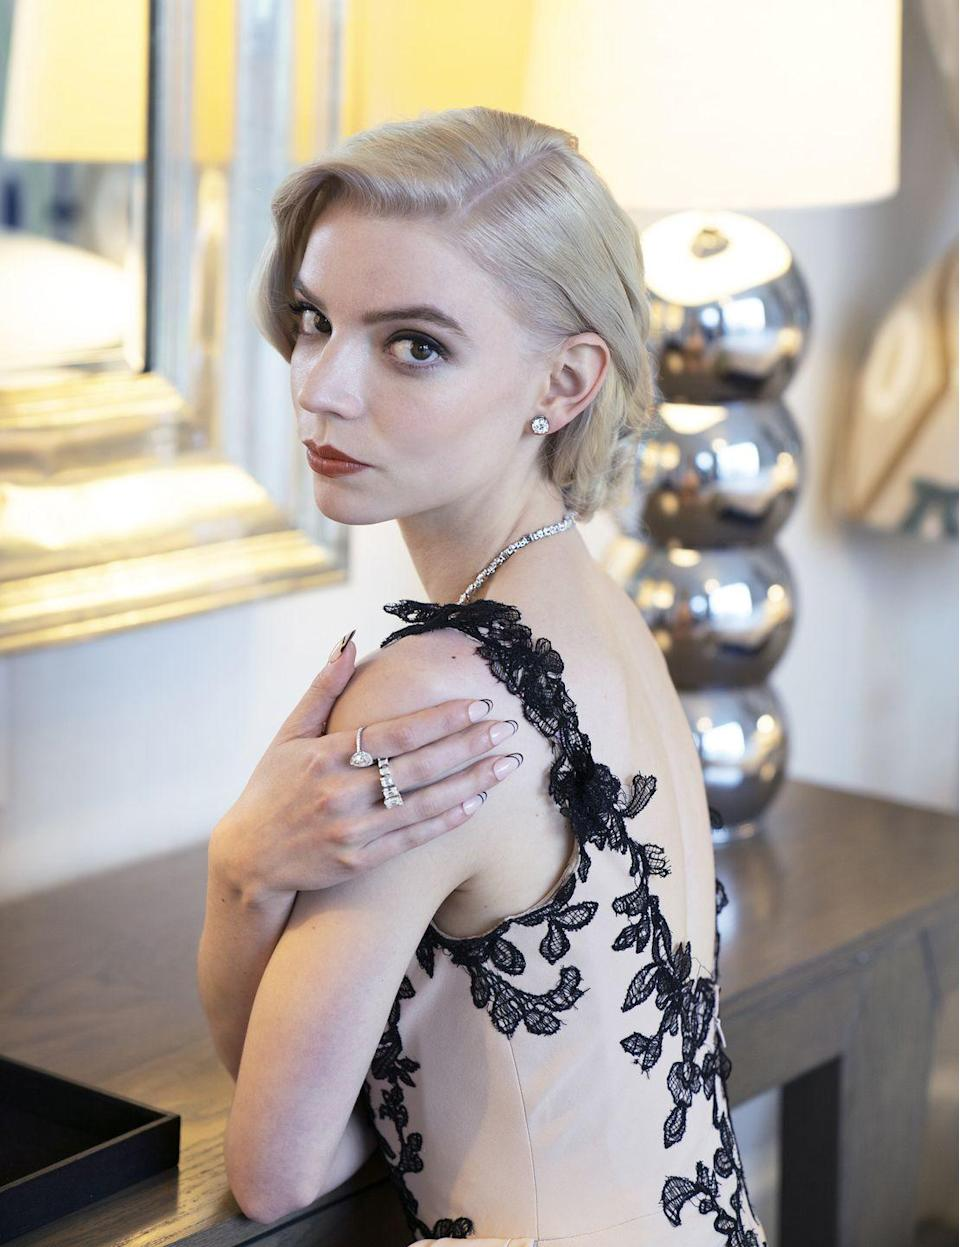 <p>SAG Award winner Anya Taylor Joy wore almost £600,000-worth of diamond jewellery from Tiffany & Co. She accessorised her delicate Vera Wang dress with a radiant necklace featuring more than 70 mixed-cut diamonds, plus a pair of diamond earrings and a selection of rings. </p>